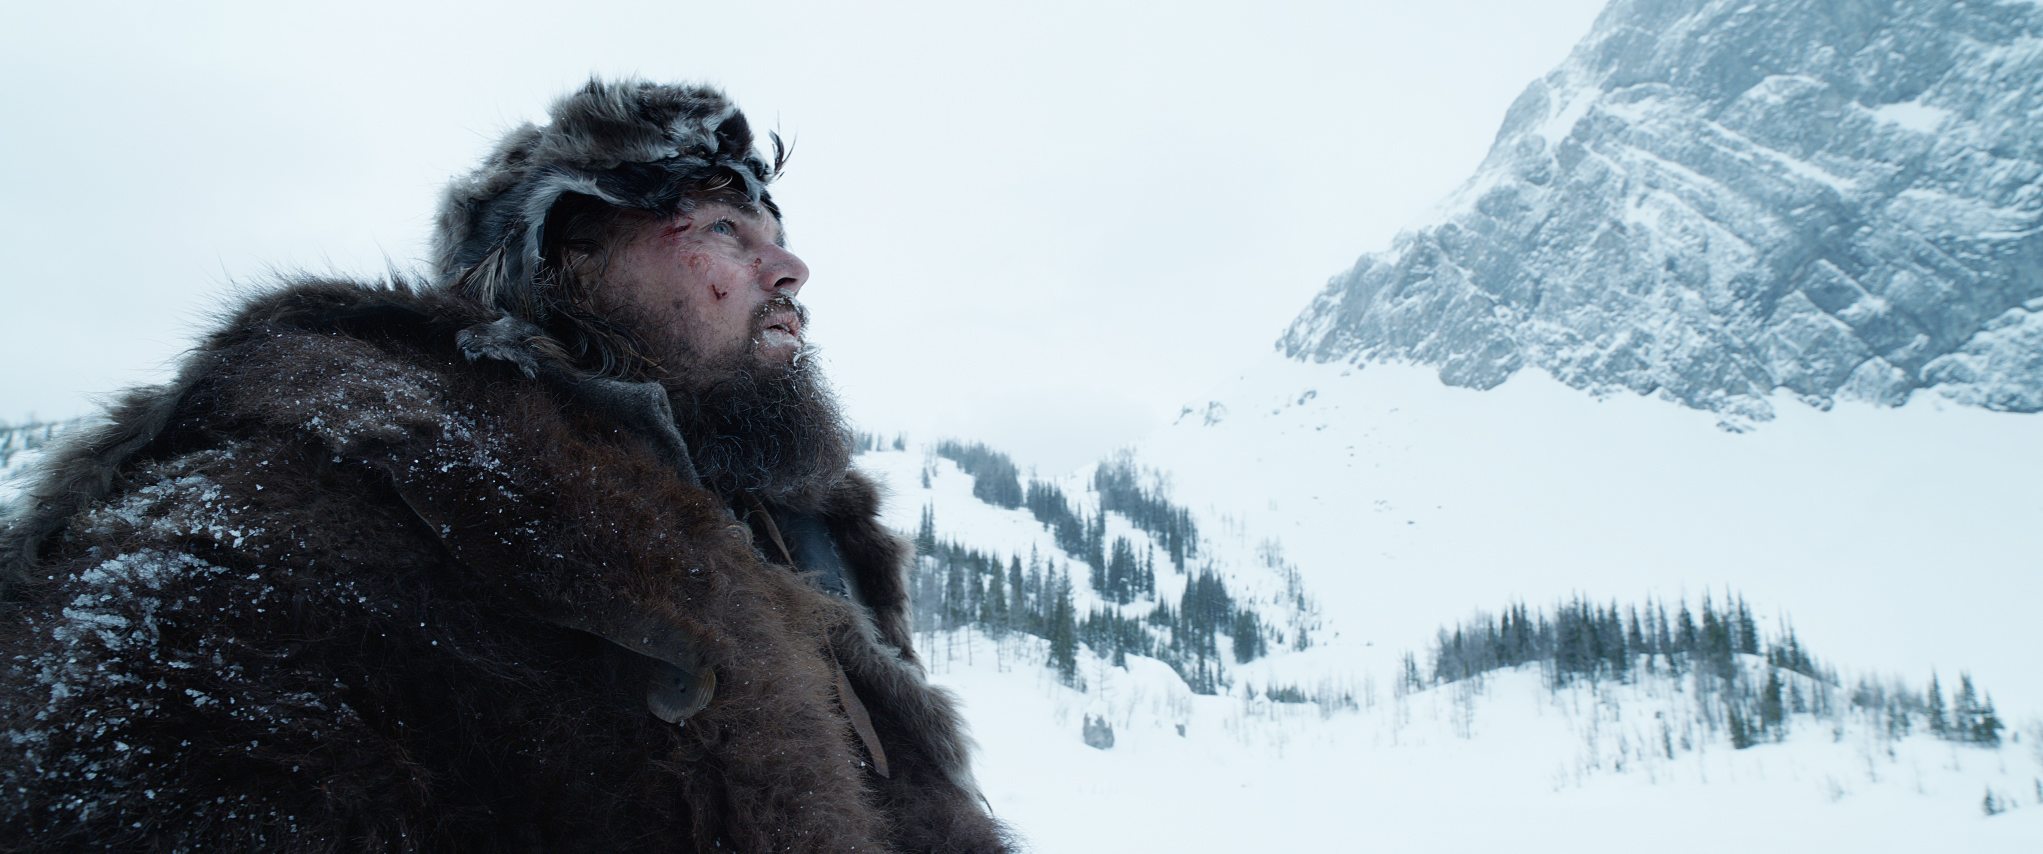 Leonardo DiCaprio in The Revenant.